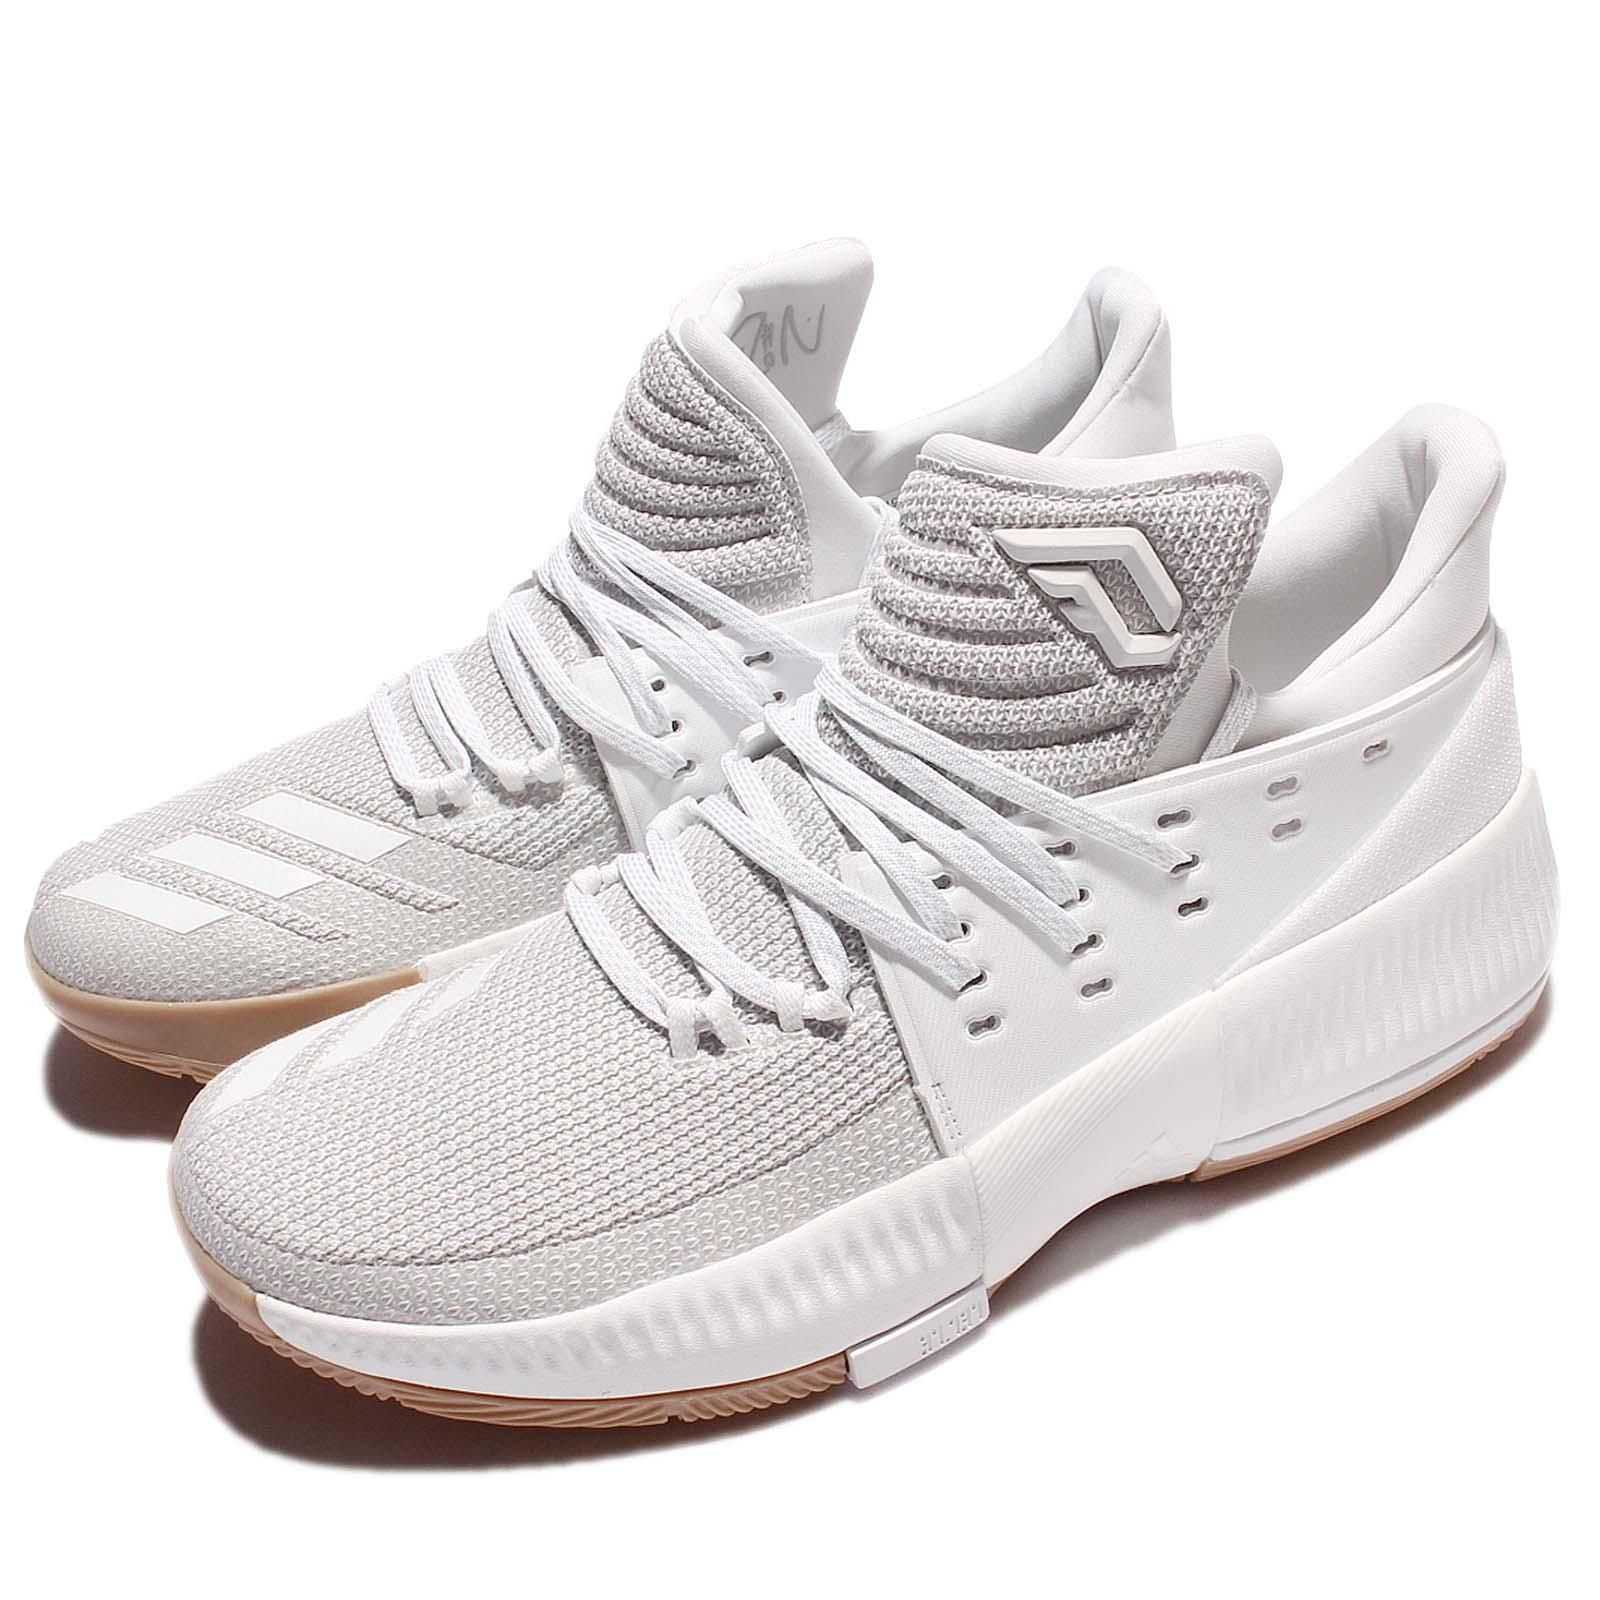 new product 6c023 28cab adidas D Lillard 3 Damian Lillard Legacy White Gum Men Basketball Shoes  BW0323